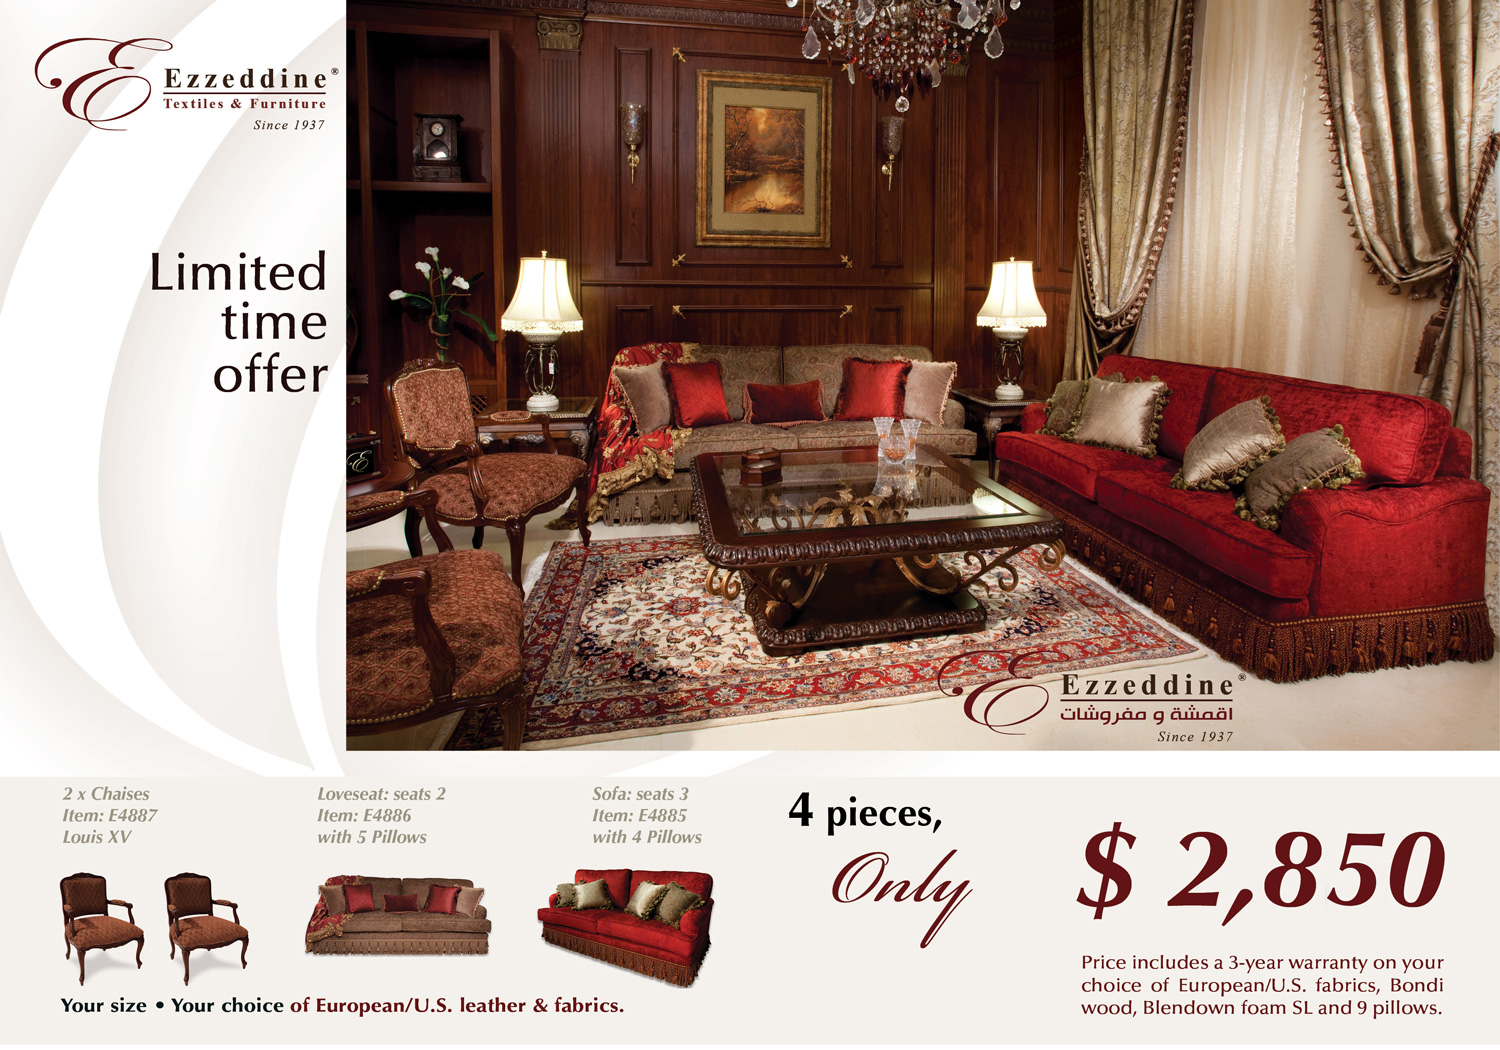 Limited Time Offer - Living Room - Three Offers Per One Offer - Only $2,850 - 4 Piece Set Living Room